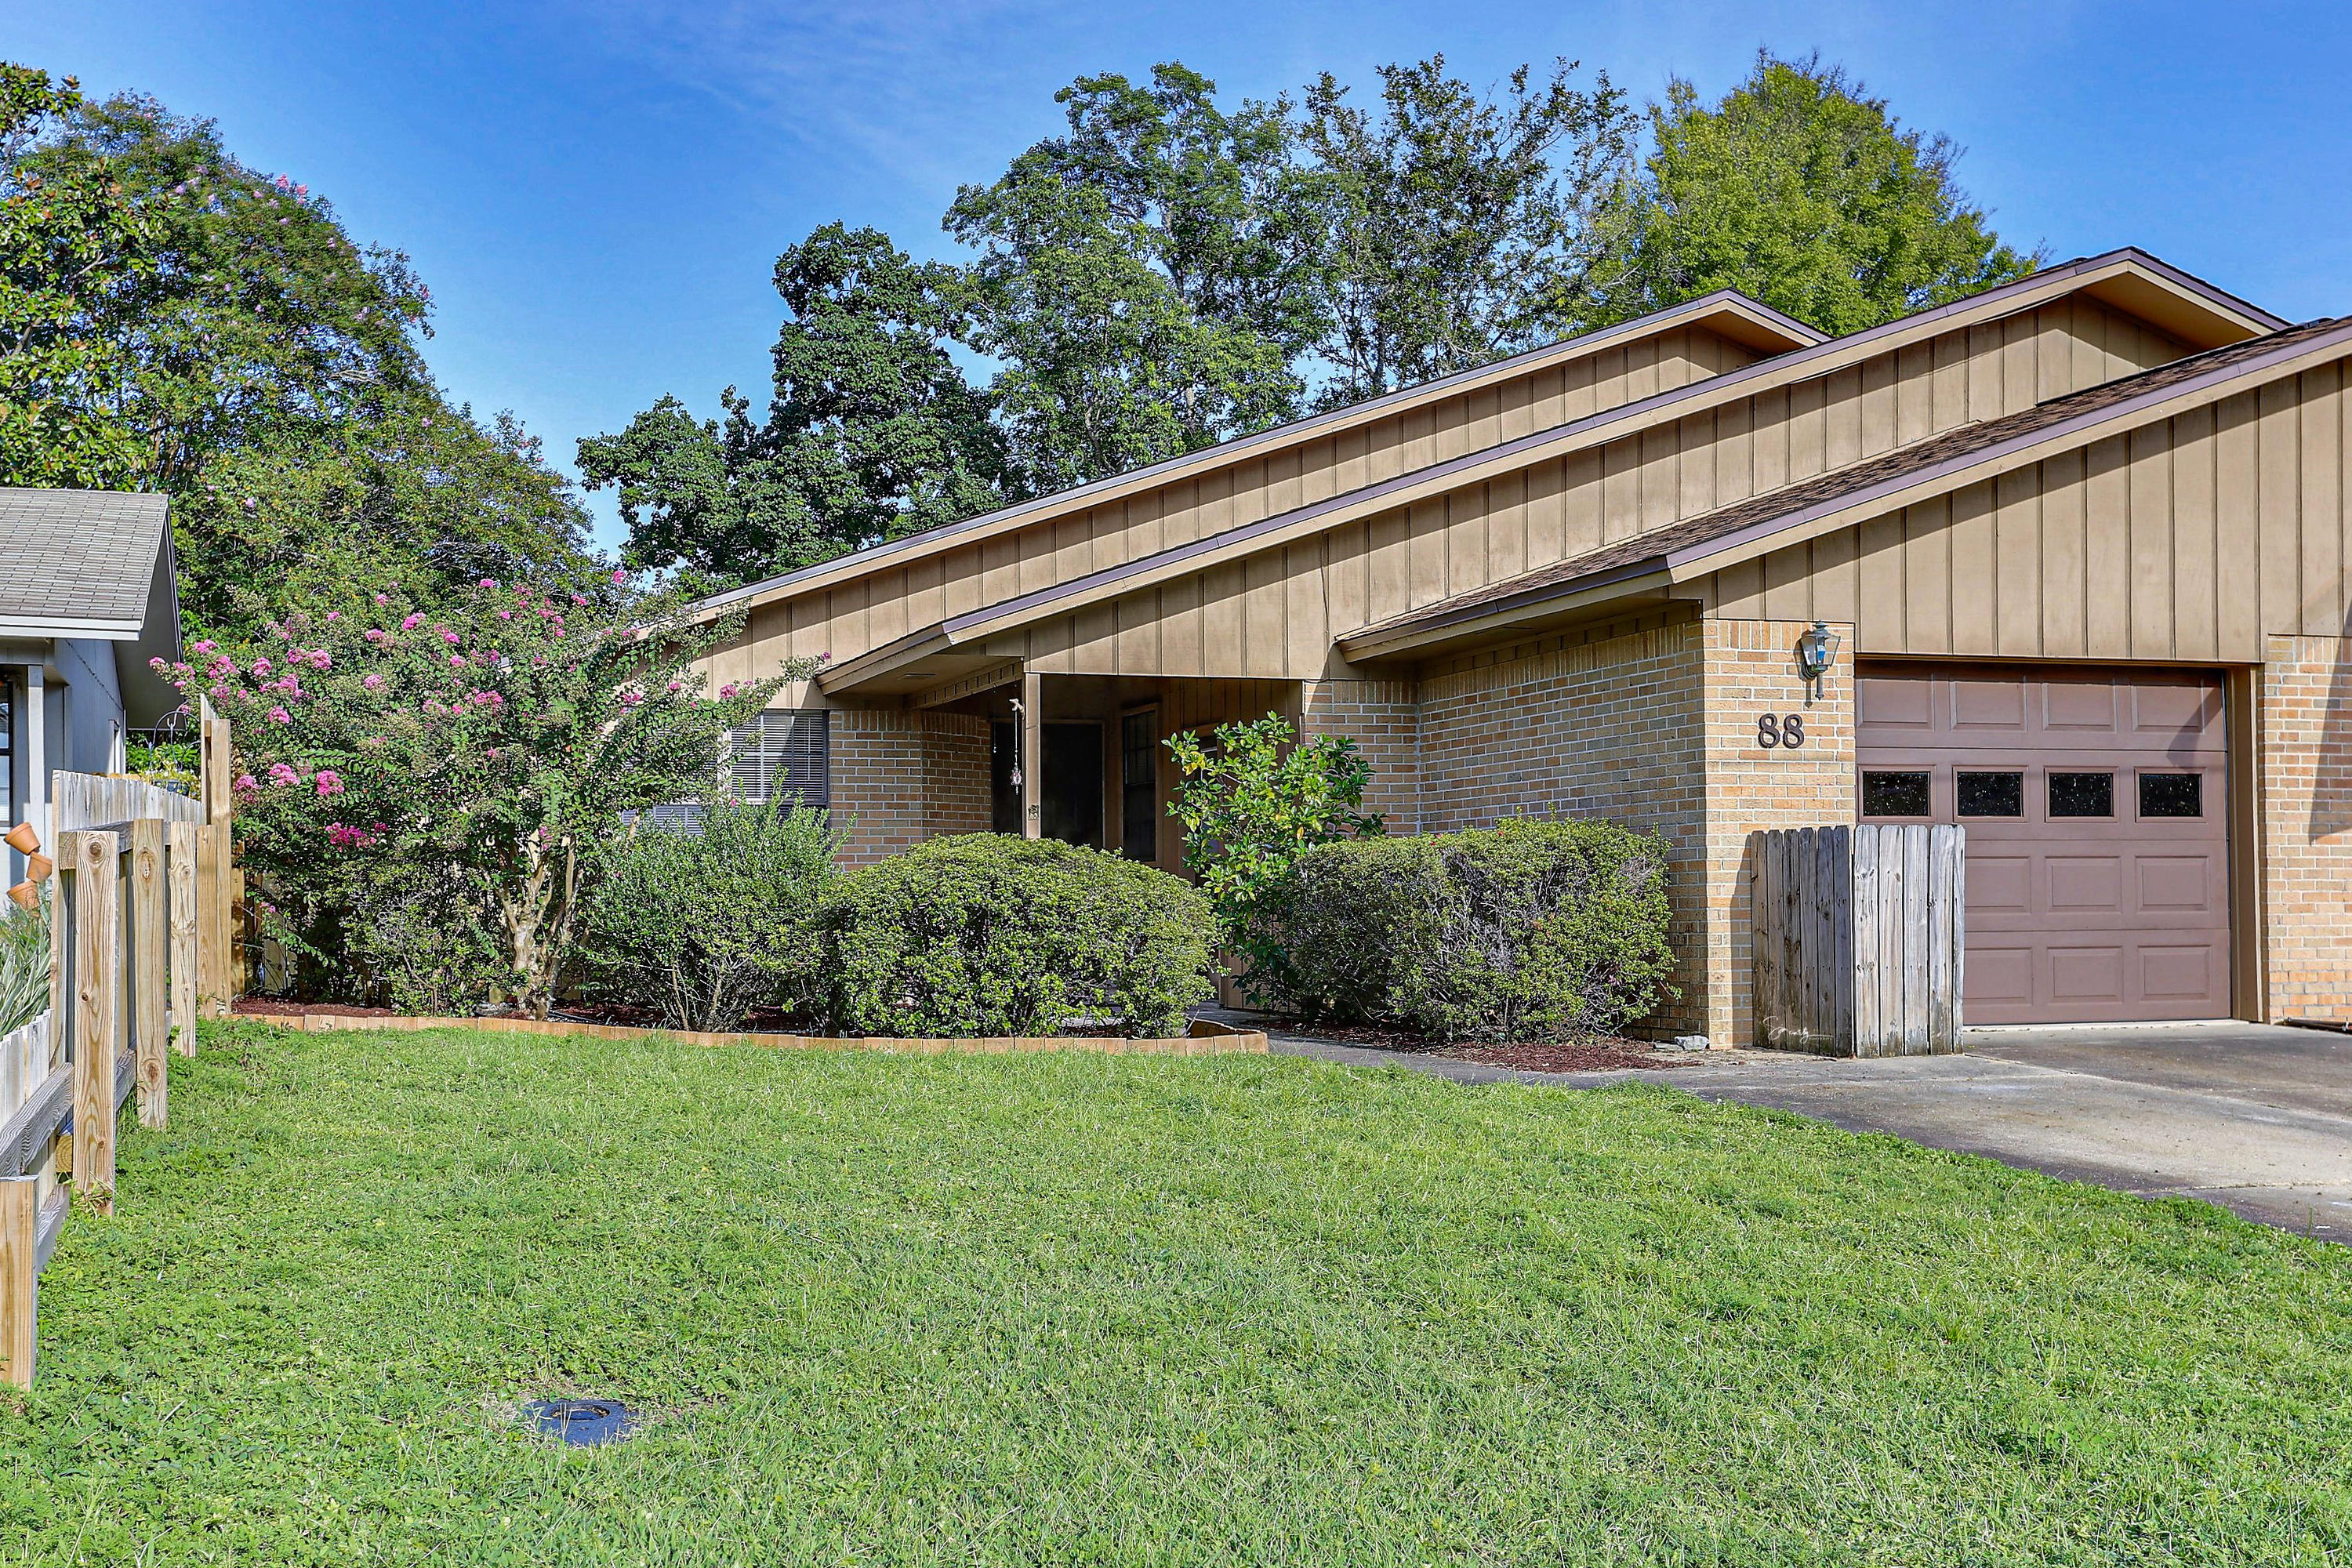 Photo of home for sale at 88 5th, Shalimar FL